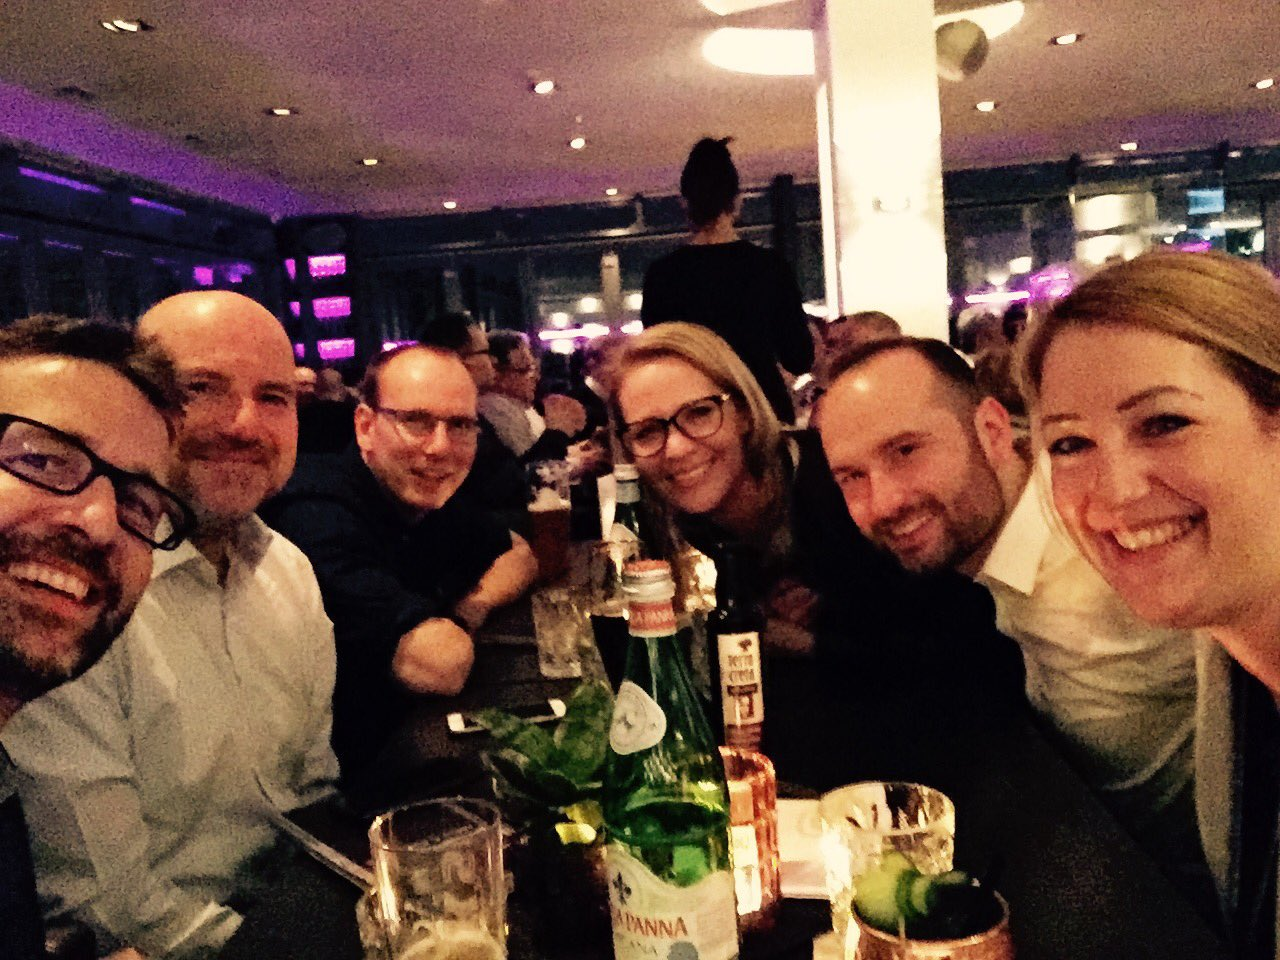 End of #cebiteda day 1 in Hannover - now #eol #EatingOutLoud #6sinne with @lukizzl @tipalemar @frankmbock @anke_wendelken @LarCall 😍 https://t.co/XqVjjcxtE0